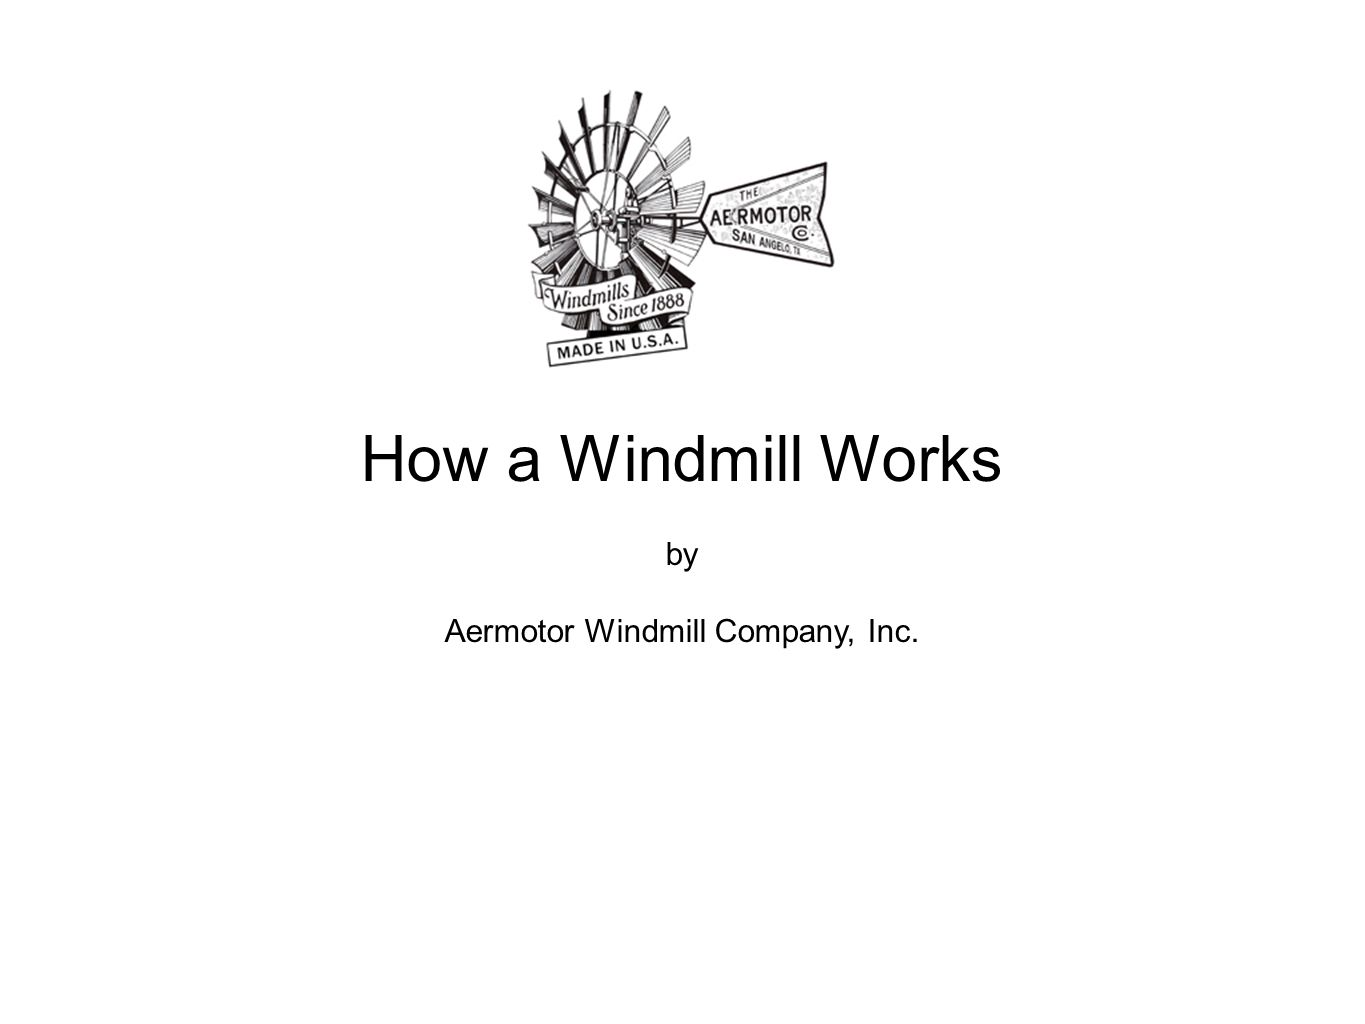 How a Windmill Works by Aermotor Windmill Company, Inc.